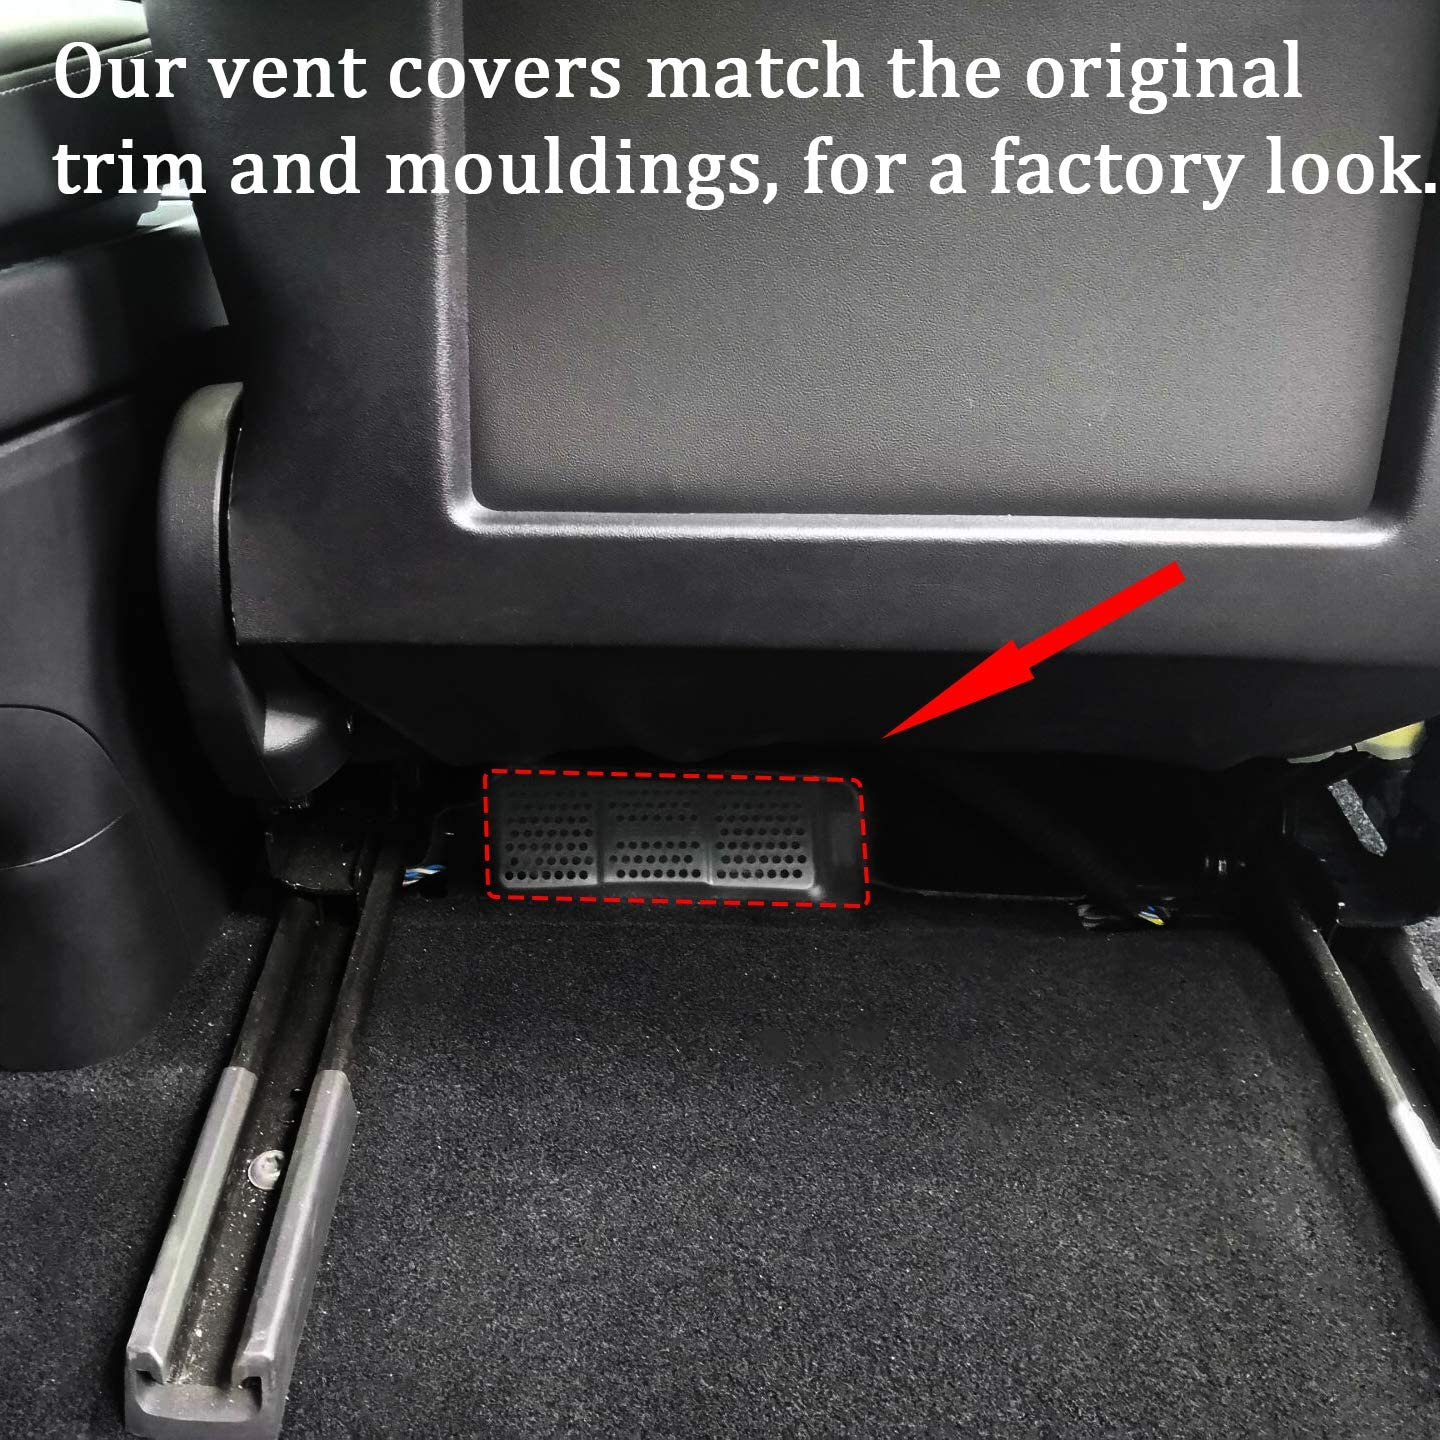 Tesla Model 3 Rear Seat Air Vent Cover Grille Under Front Seat (2 PCS)